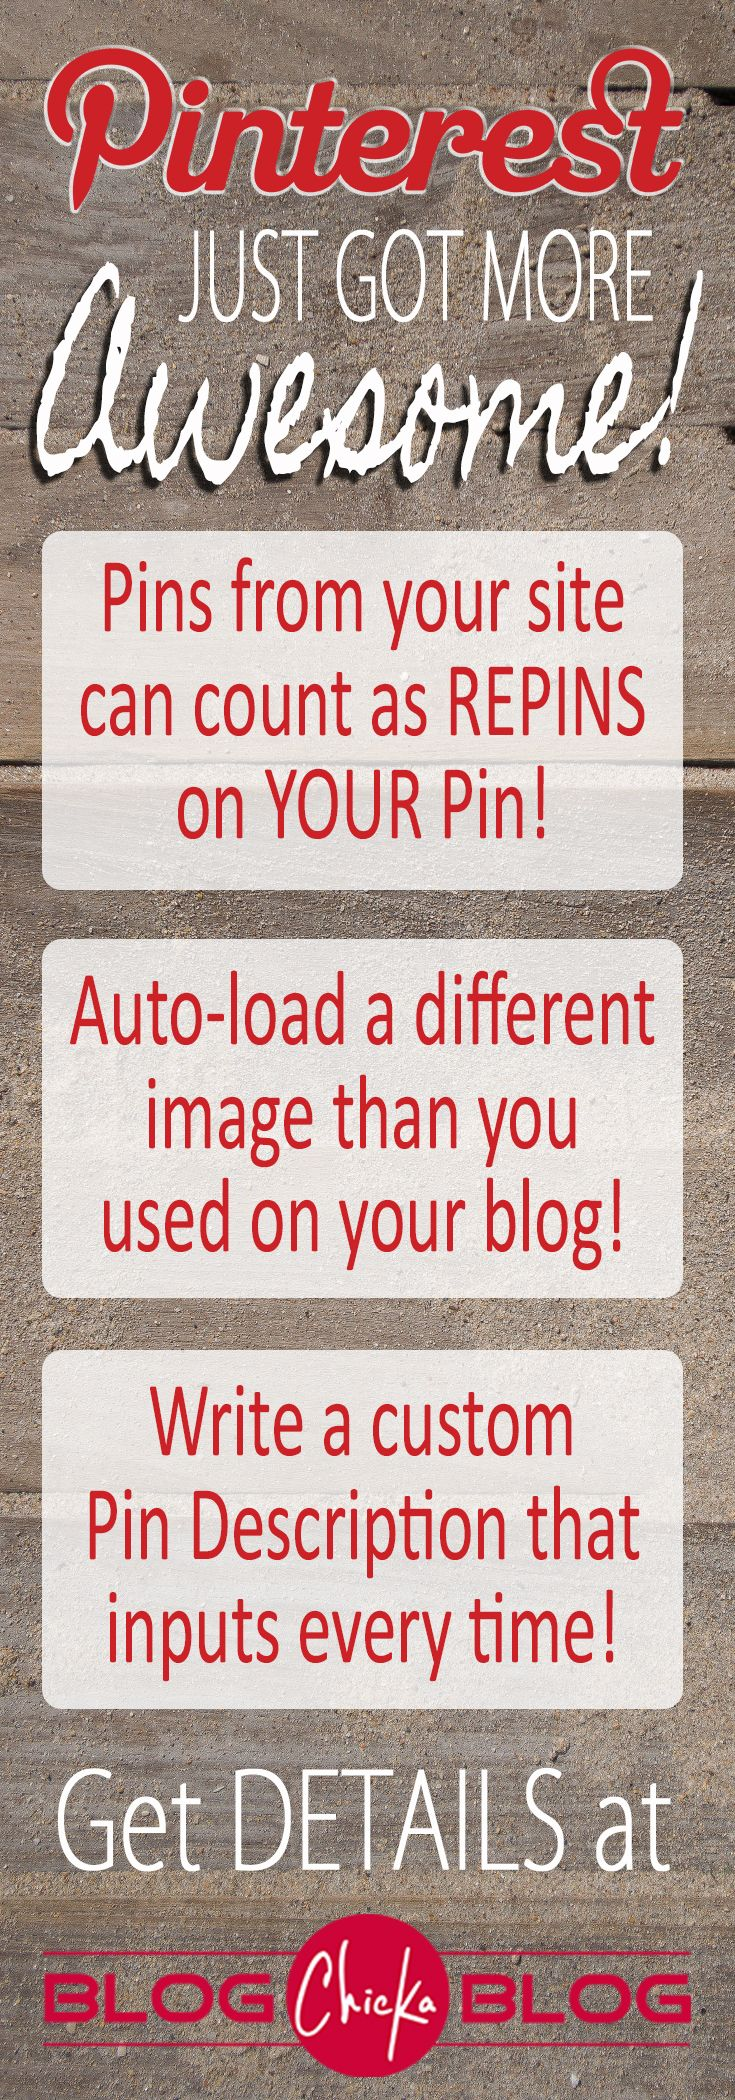 Pinterest just released updates that allow you to code your images to do things like apply more REPIN numbers to your pins when someone pins from your site, use any image or size image in your post but have a Pinterest-sized verticle image auto-load in place of those images...awesome new features!